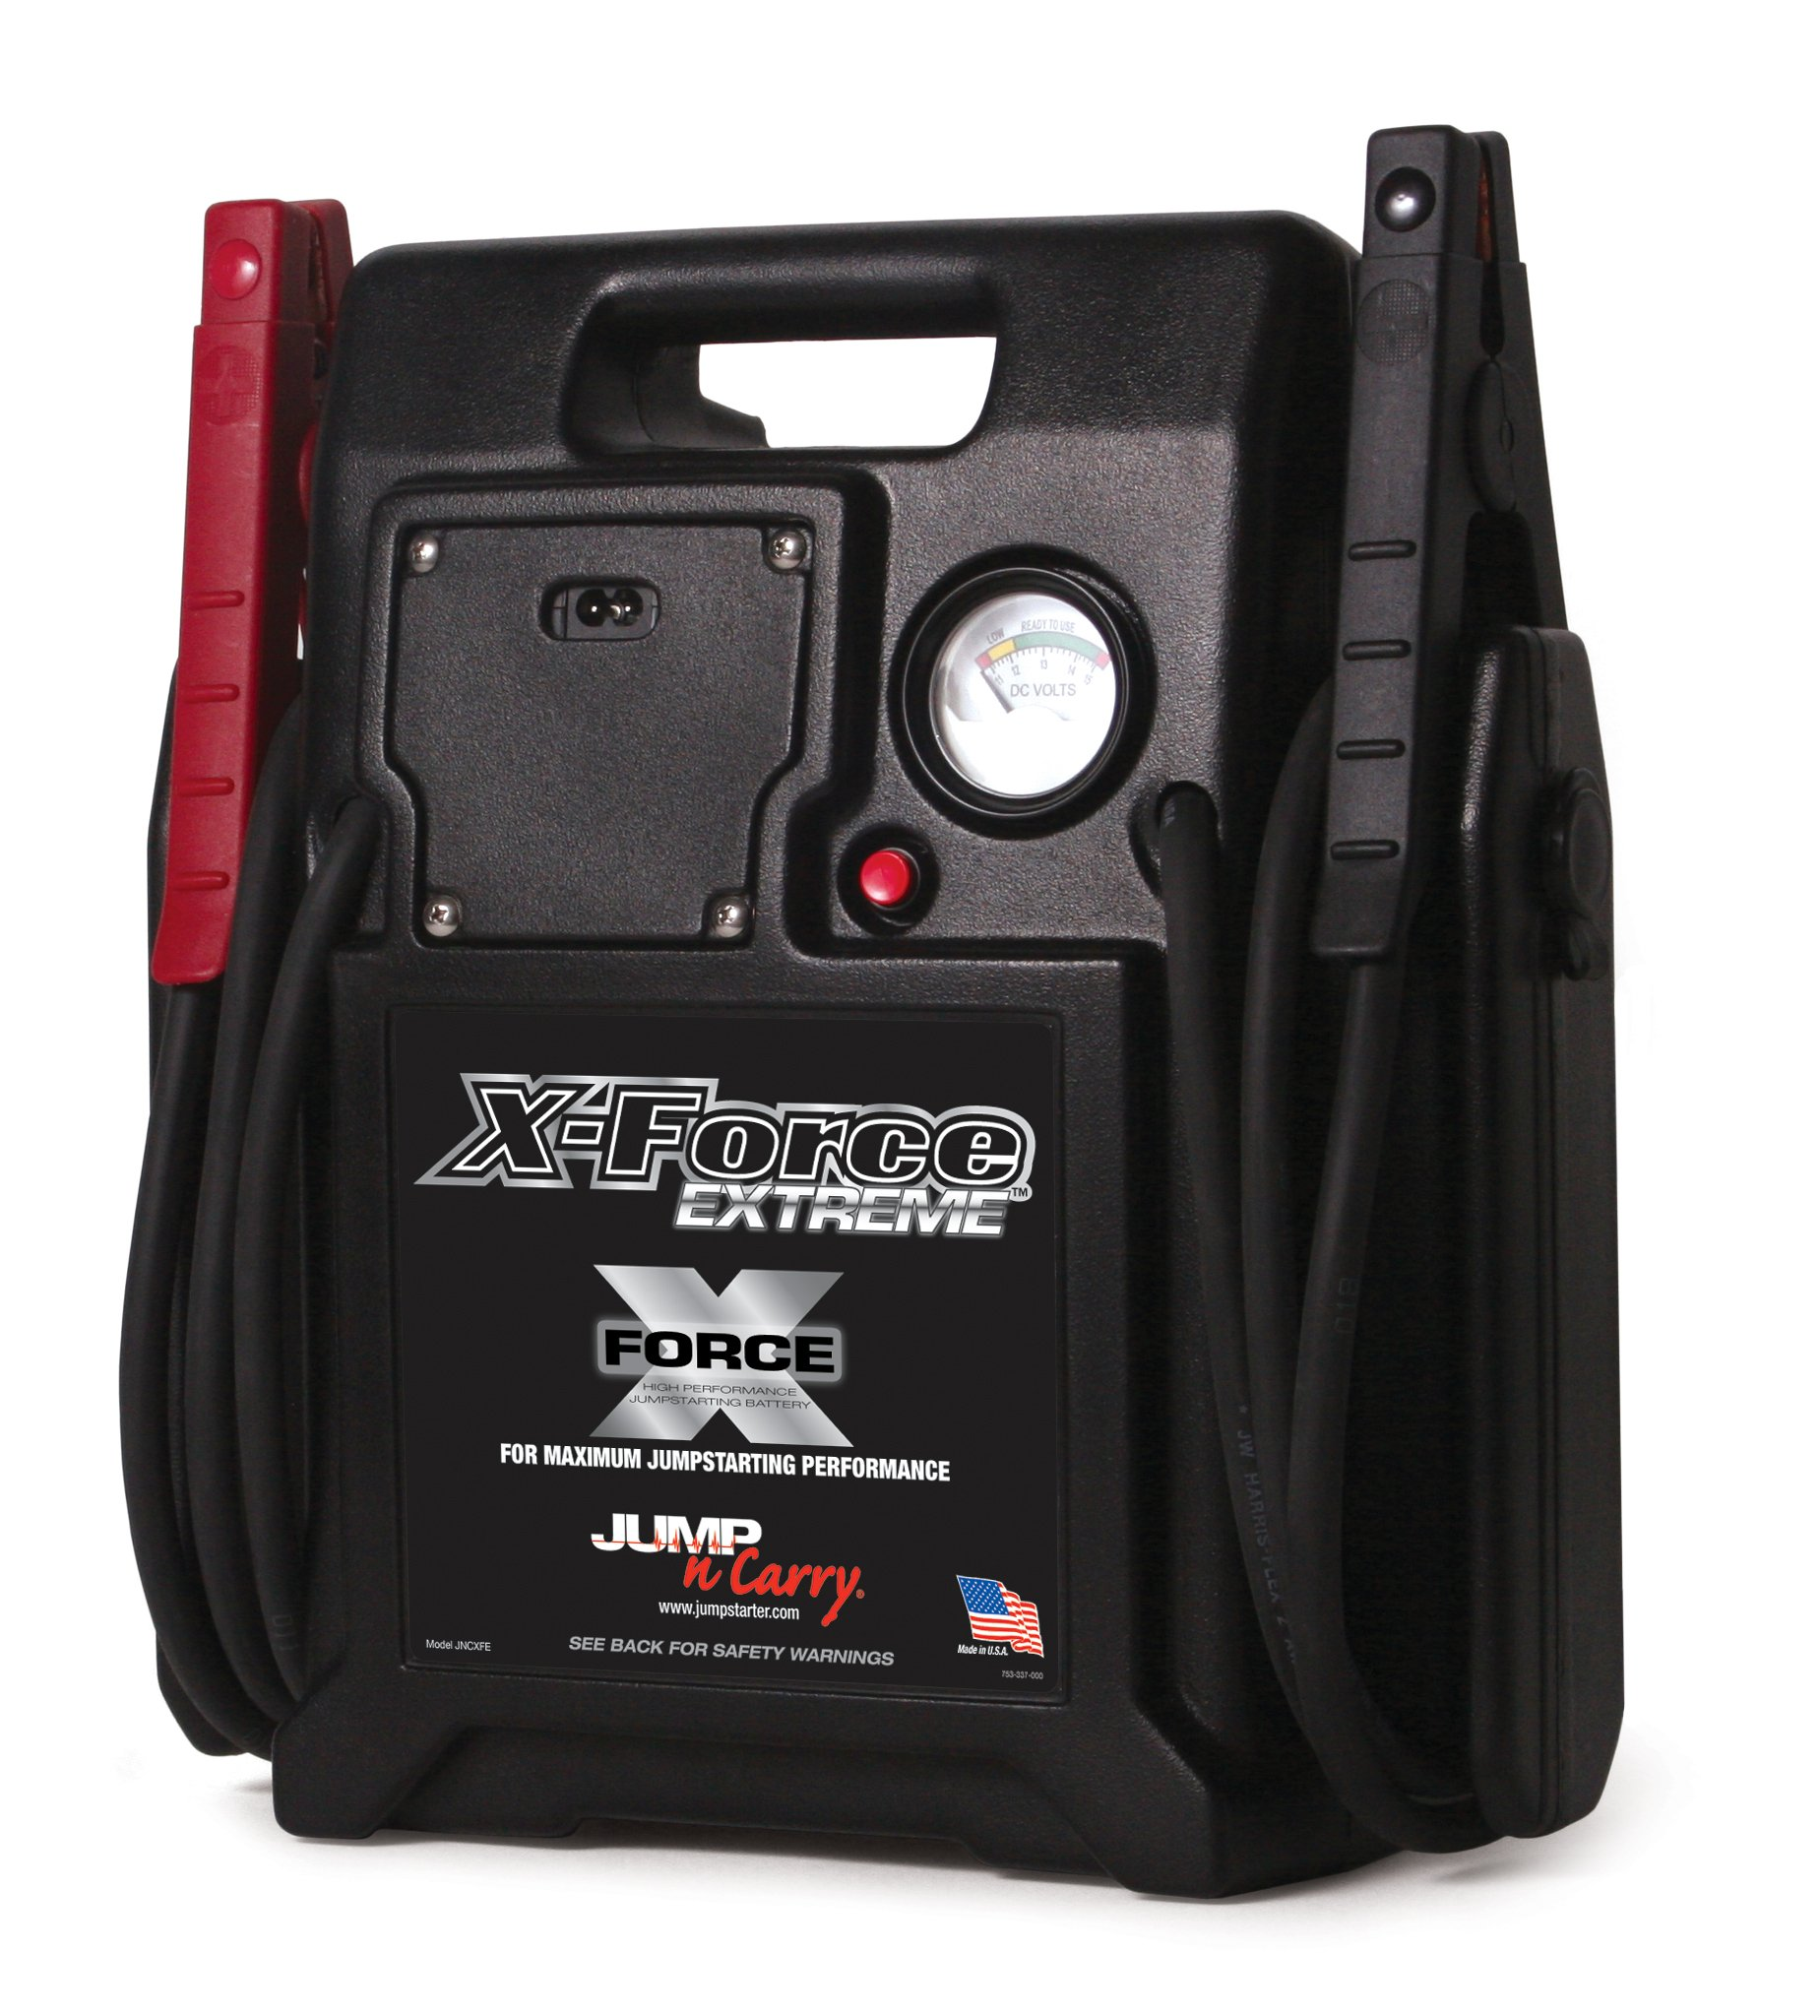 Jump-N-Carry JNCXFE X-Force Extreme 12V Dual Battery Jump Starter